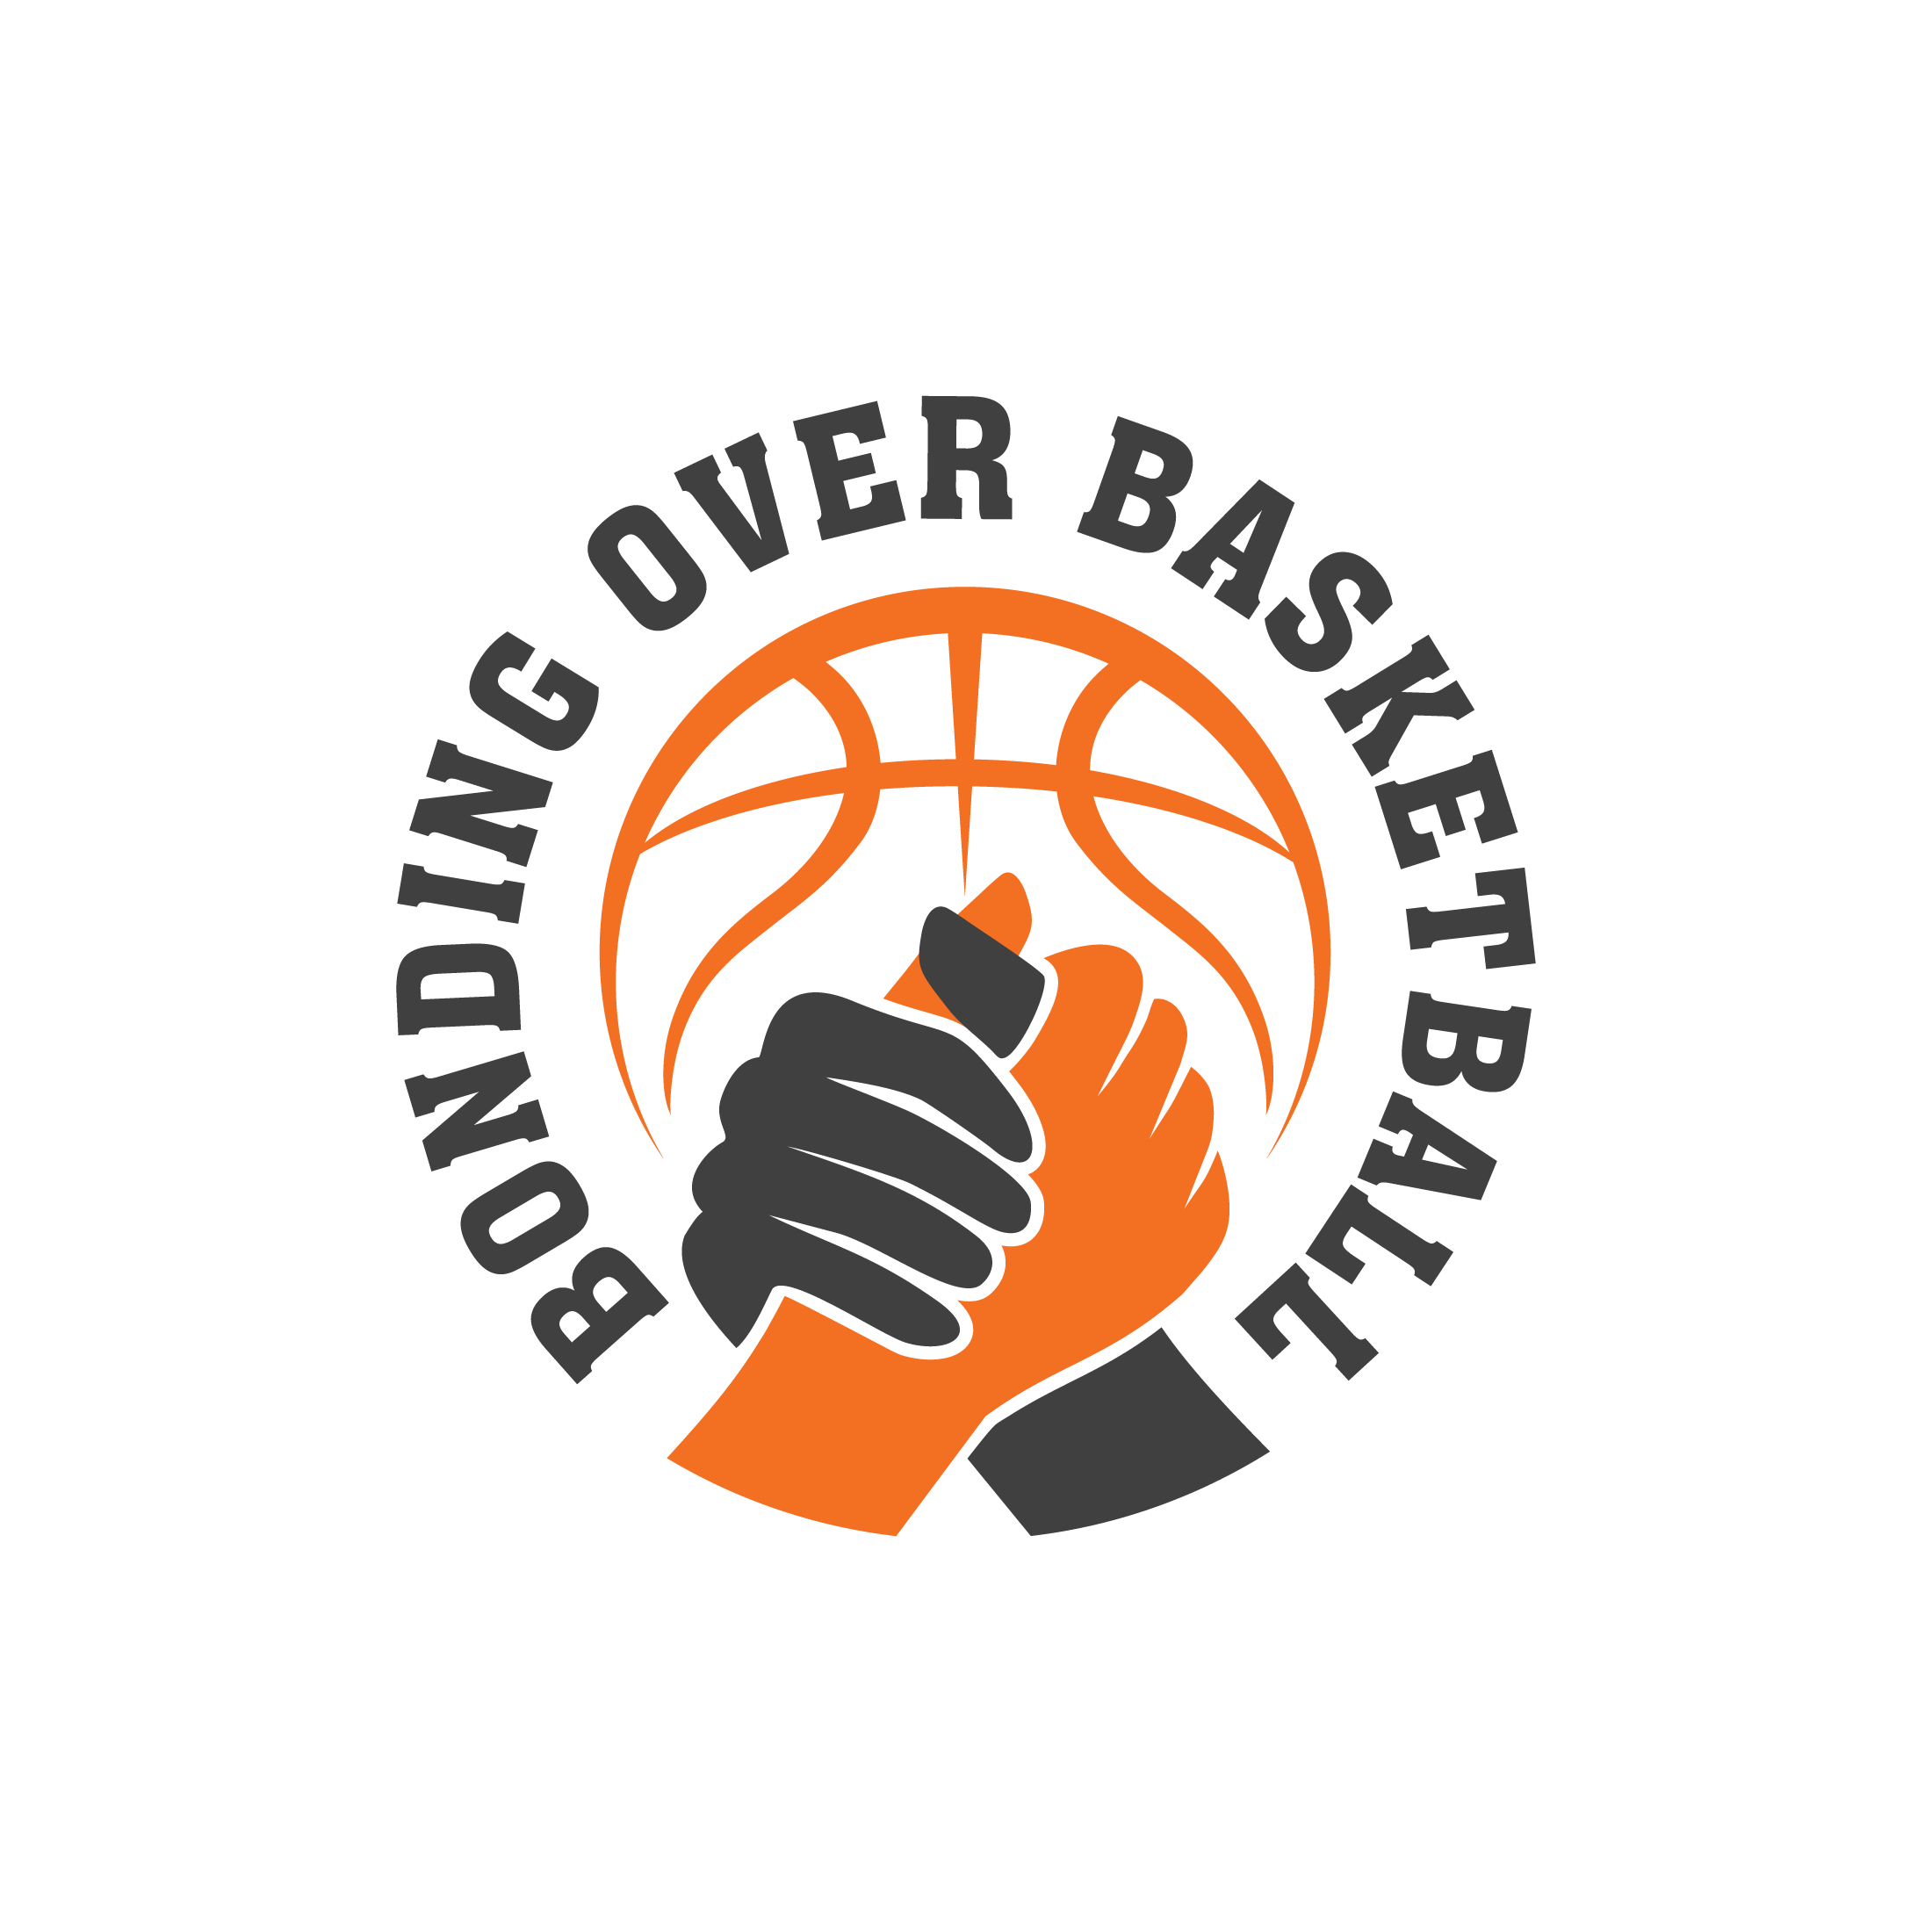 Bonding over Basketball -- a message of peace and healing